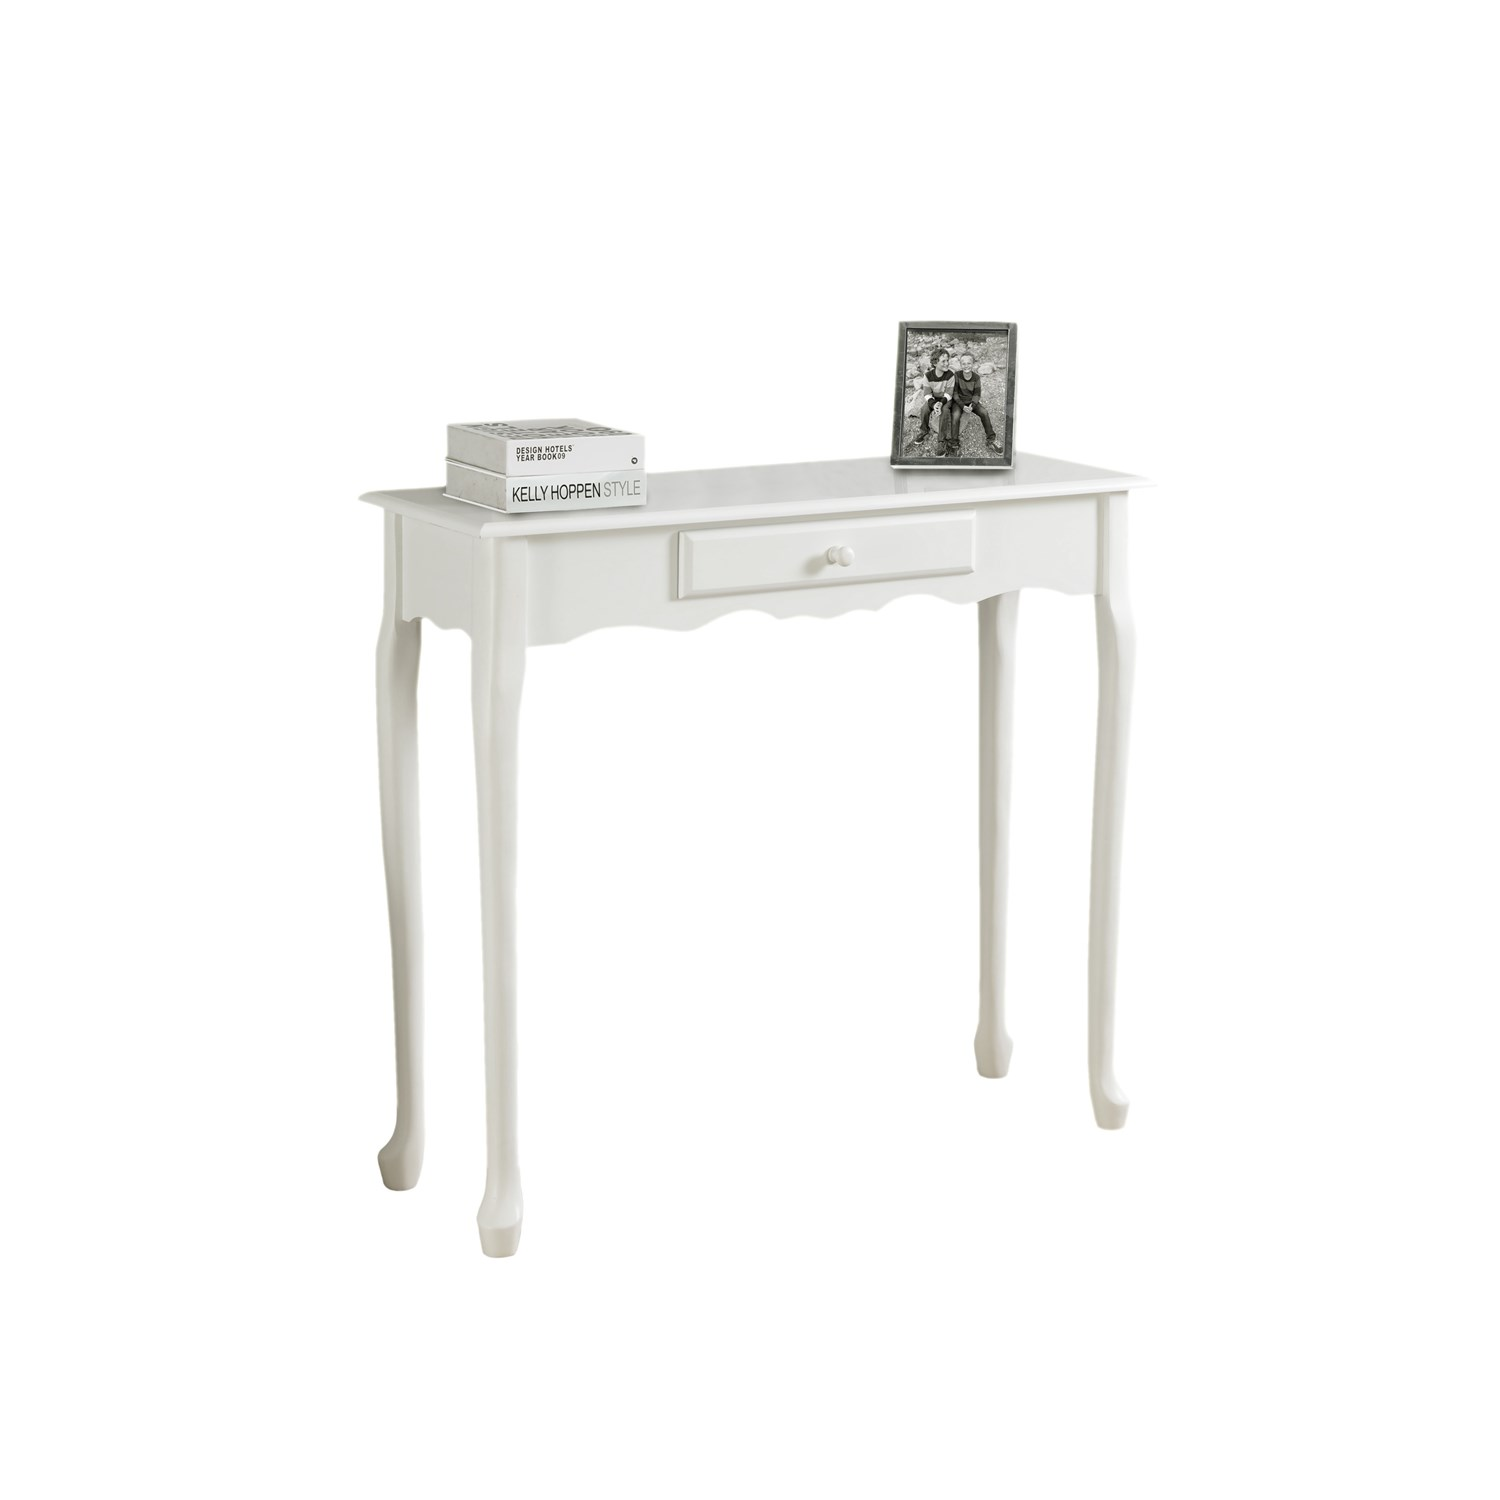 monarch specialties hall console accent table the simple white sku tap expand metal coffee set black and gray end tables corner furniture pieces patio garden outdoor bbq grill